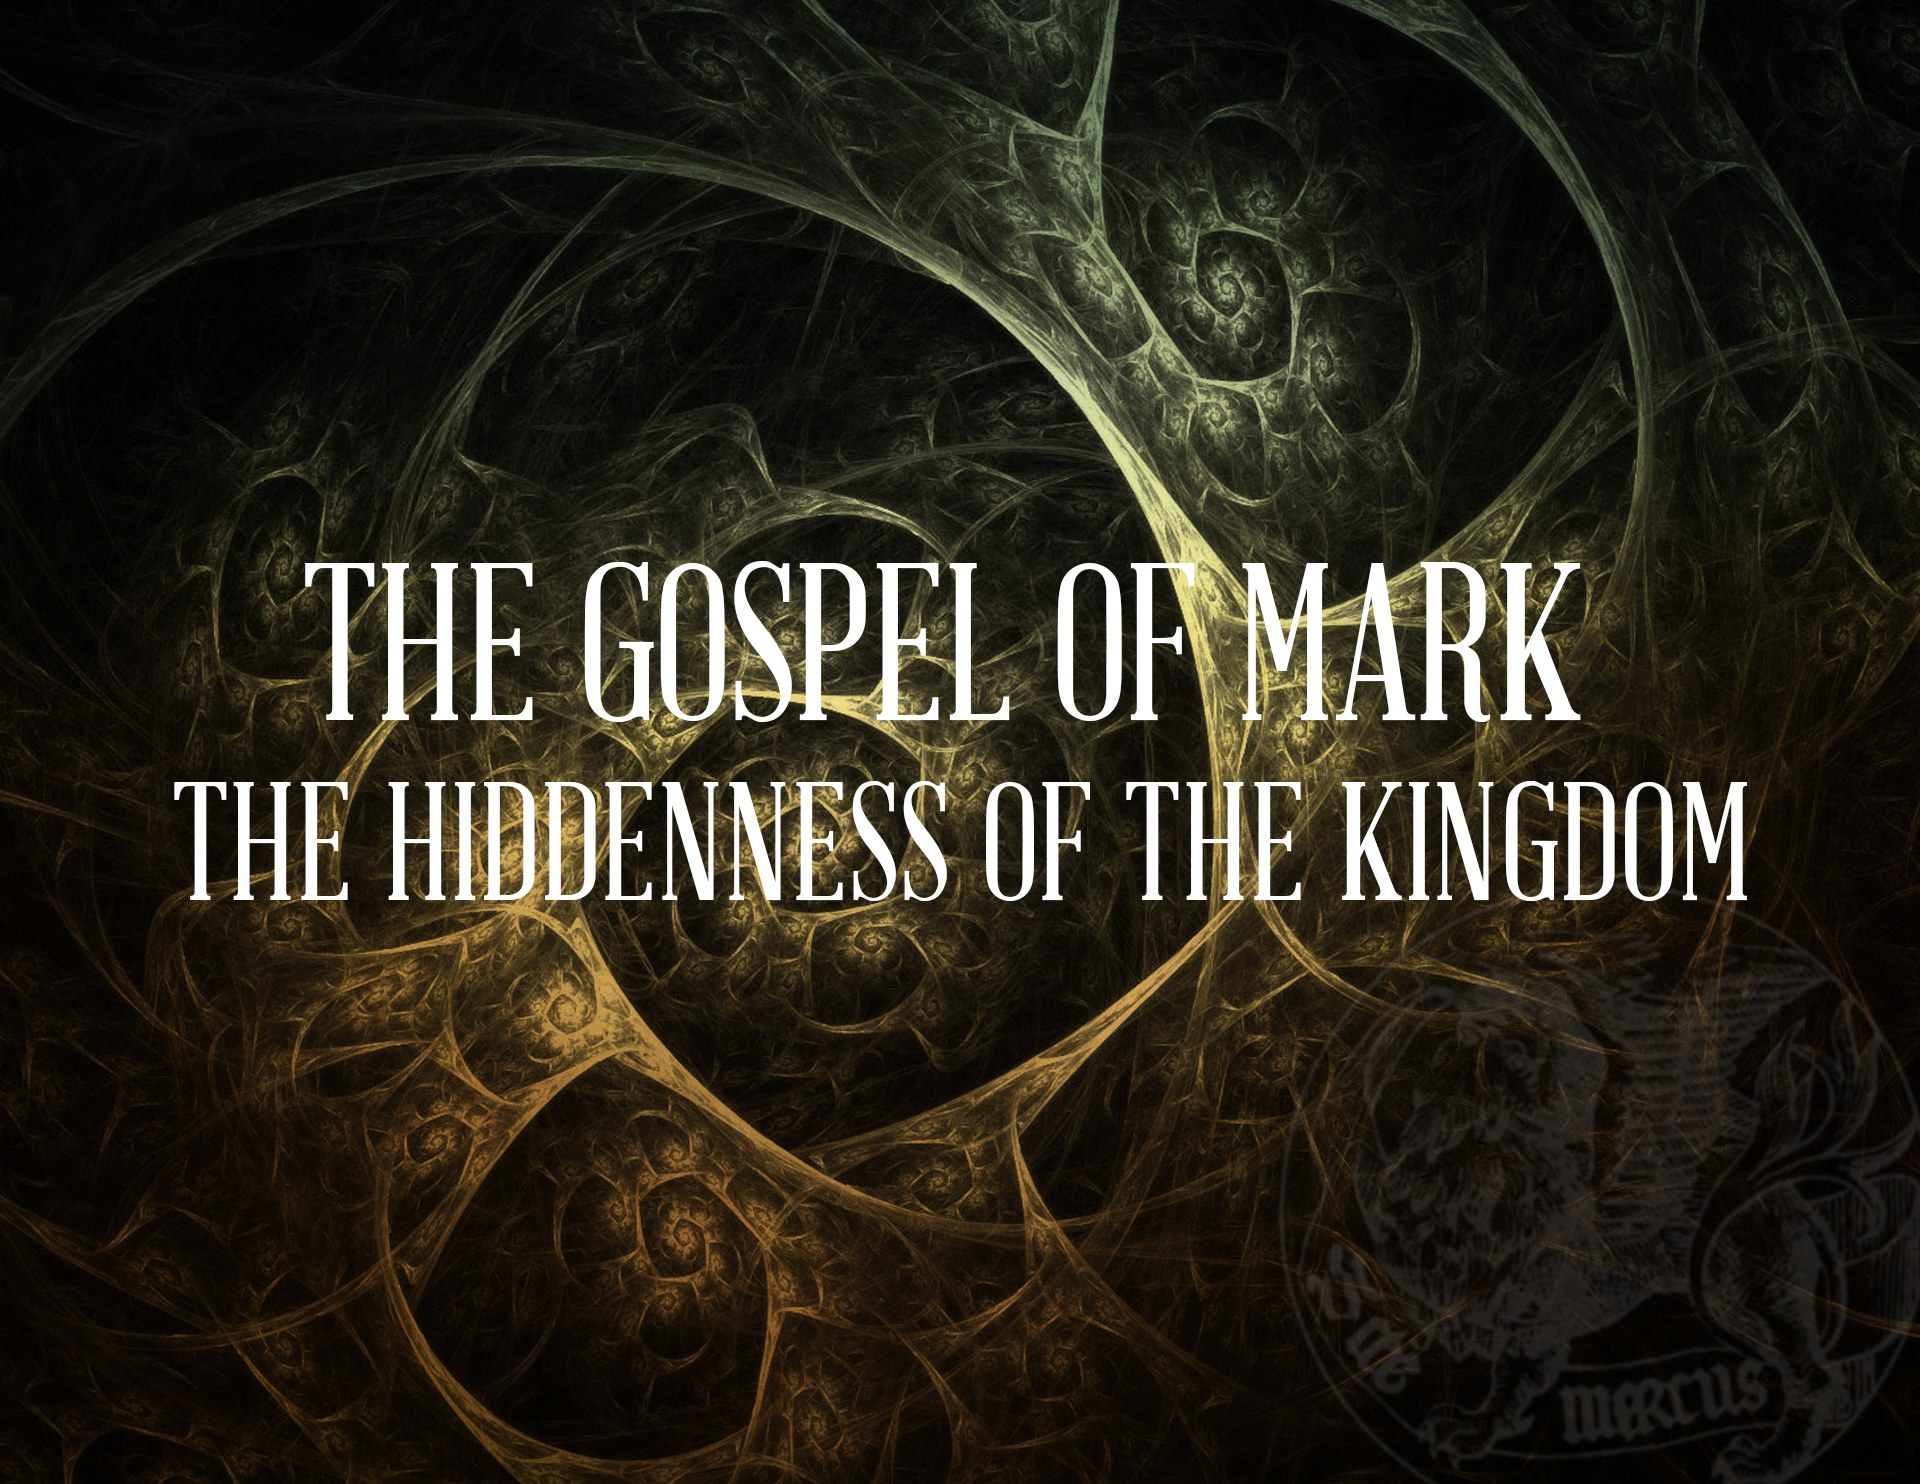 View all sermons in Mark: The Hiddenness of the Kingdom